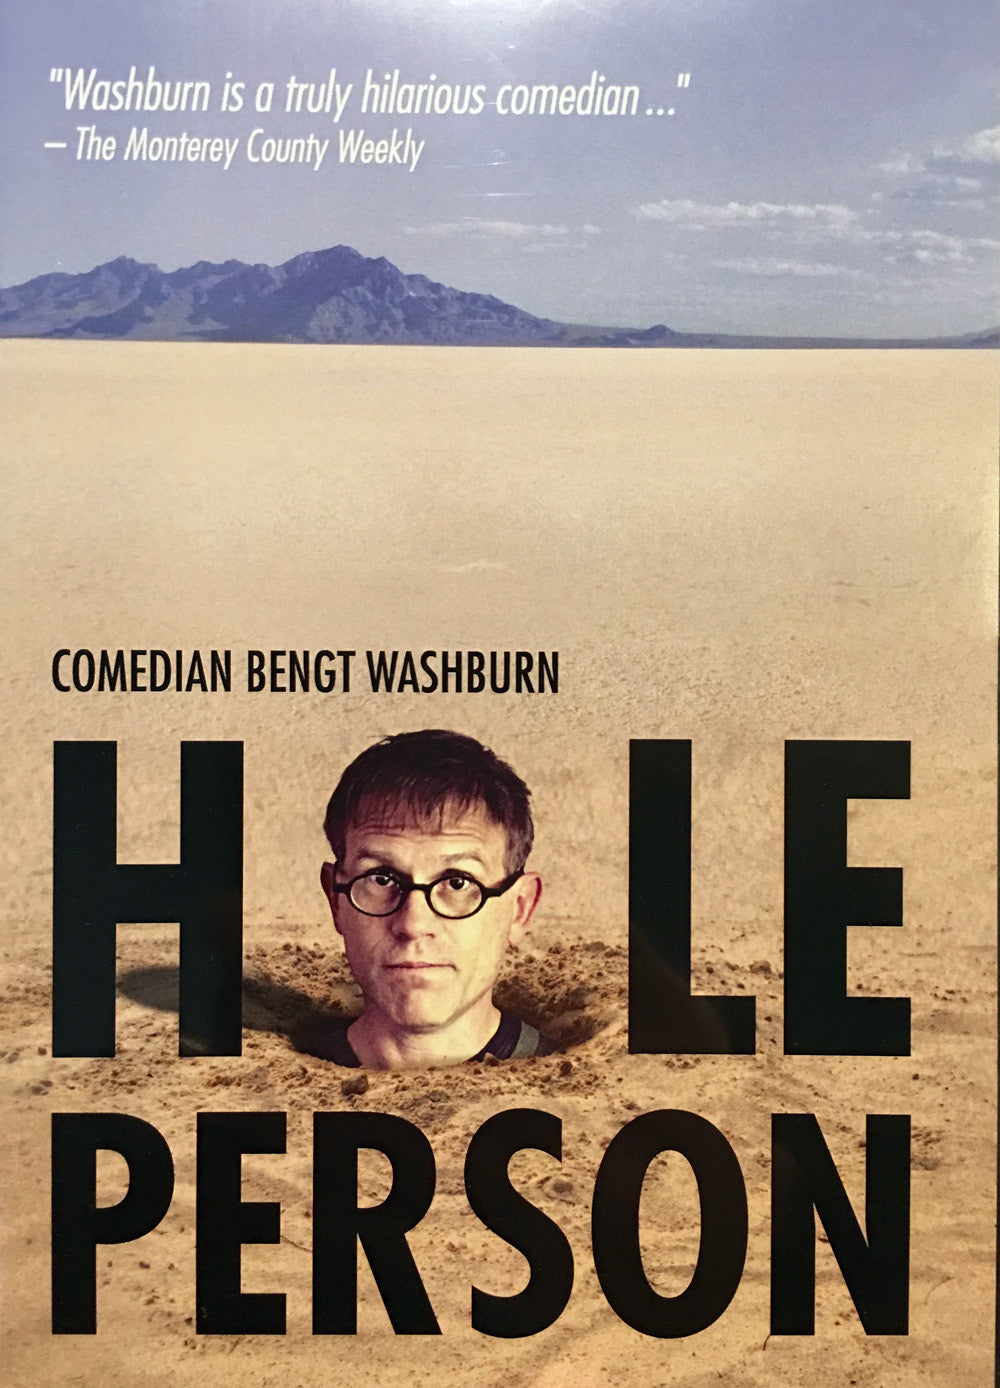 Hole Person Digital Video Download (NR but probably a very mild R rating)